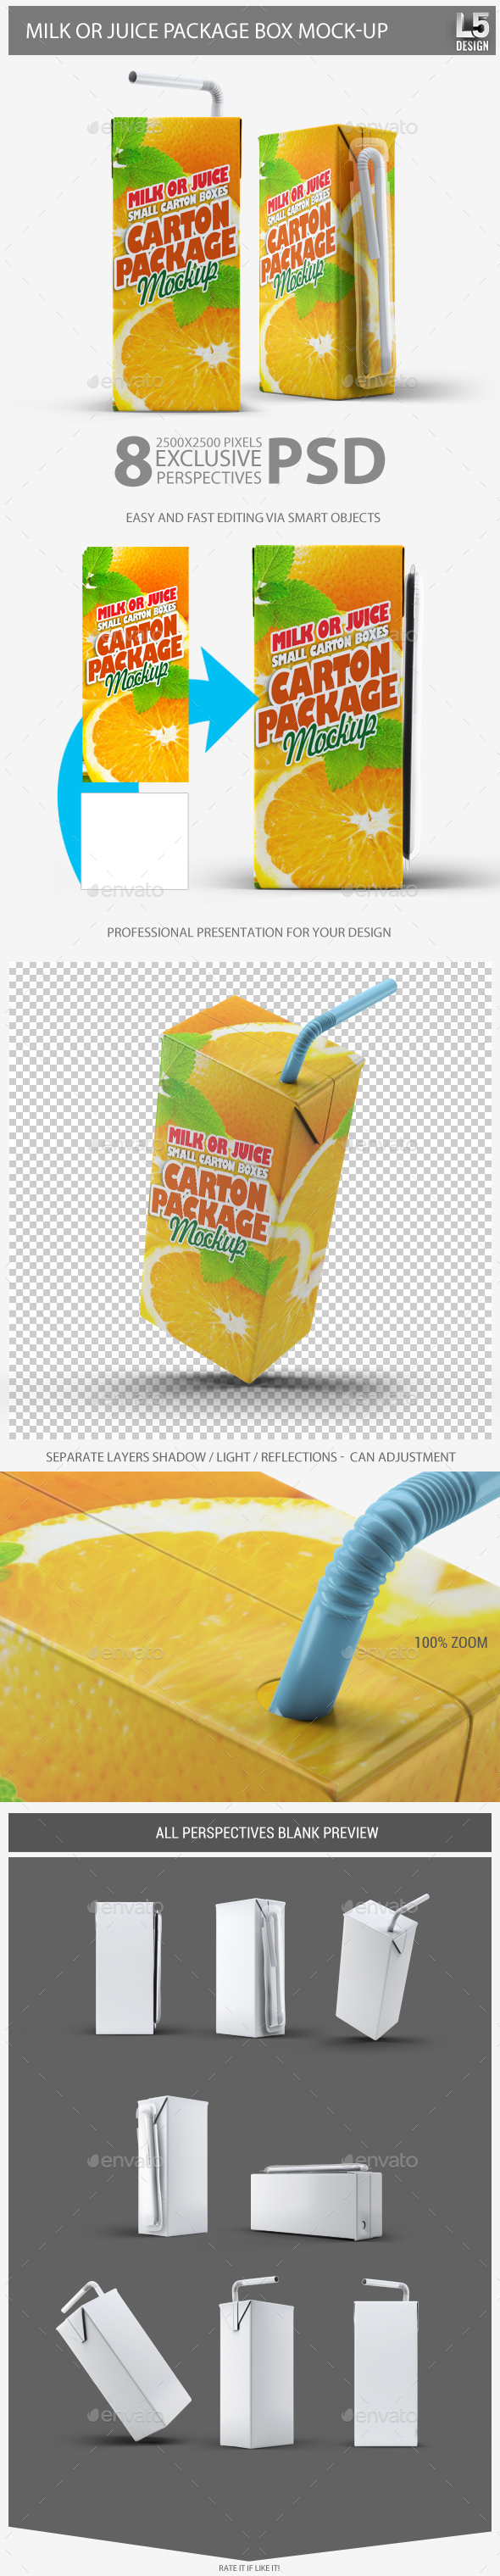 Milk or Juice Package Box Mock-Up - Food and Drink Packaging